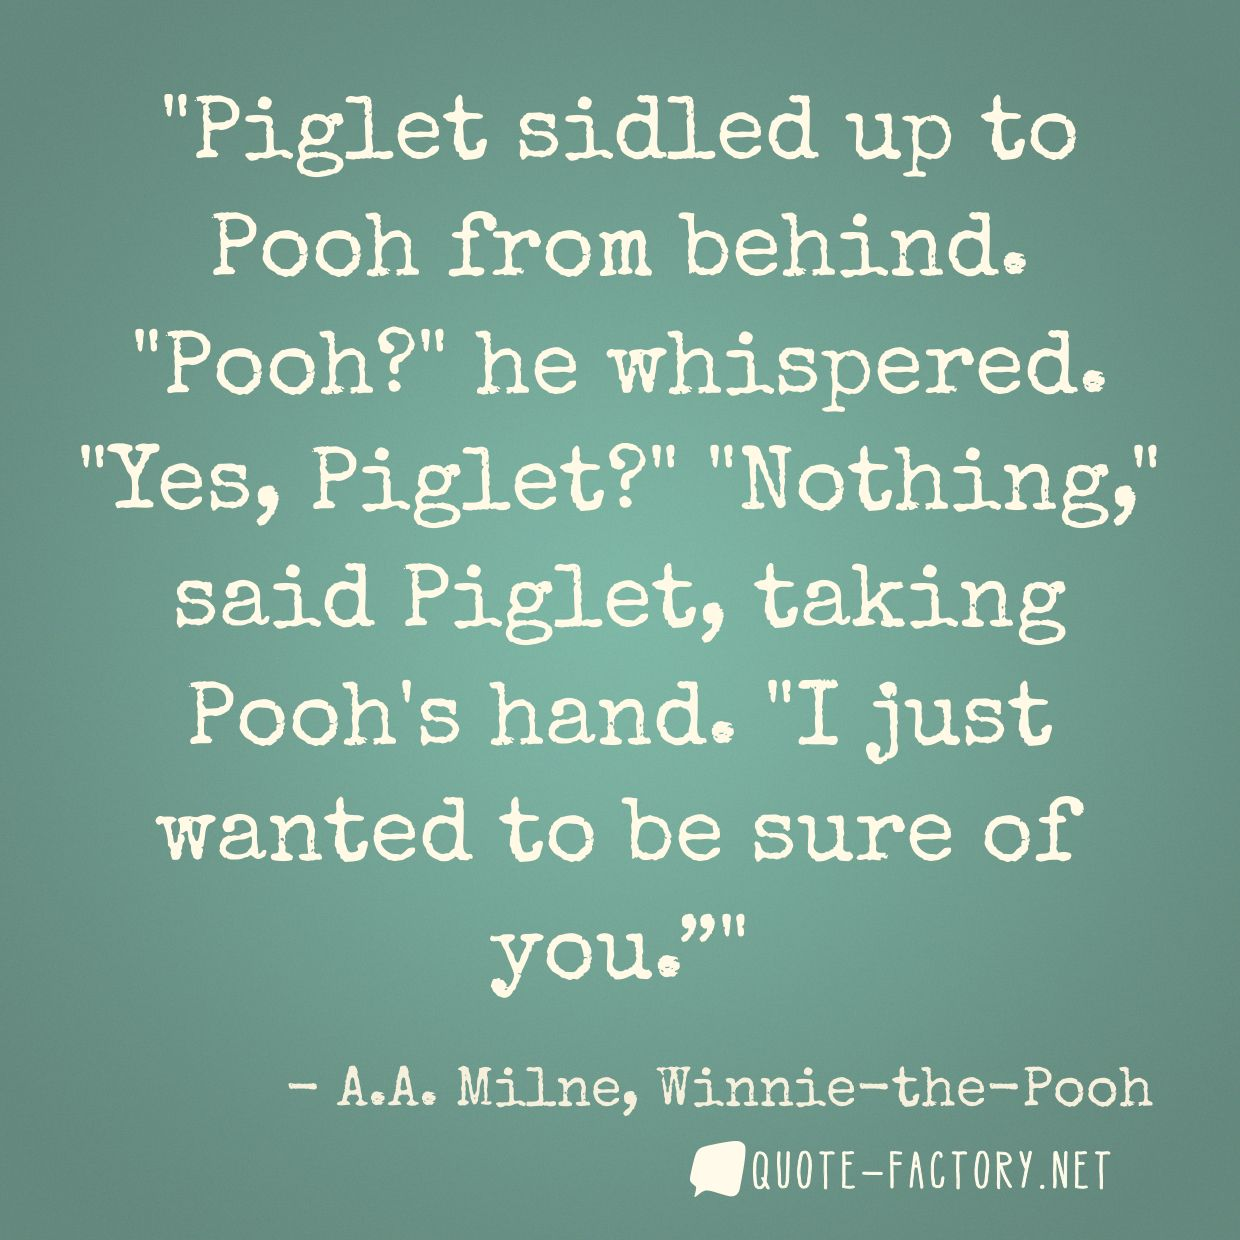 Piglet sidled up to Pooh from behind.